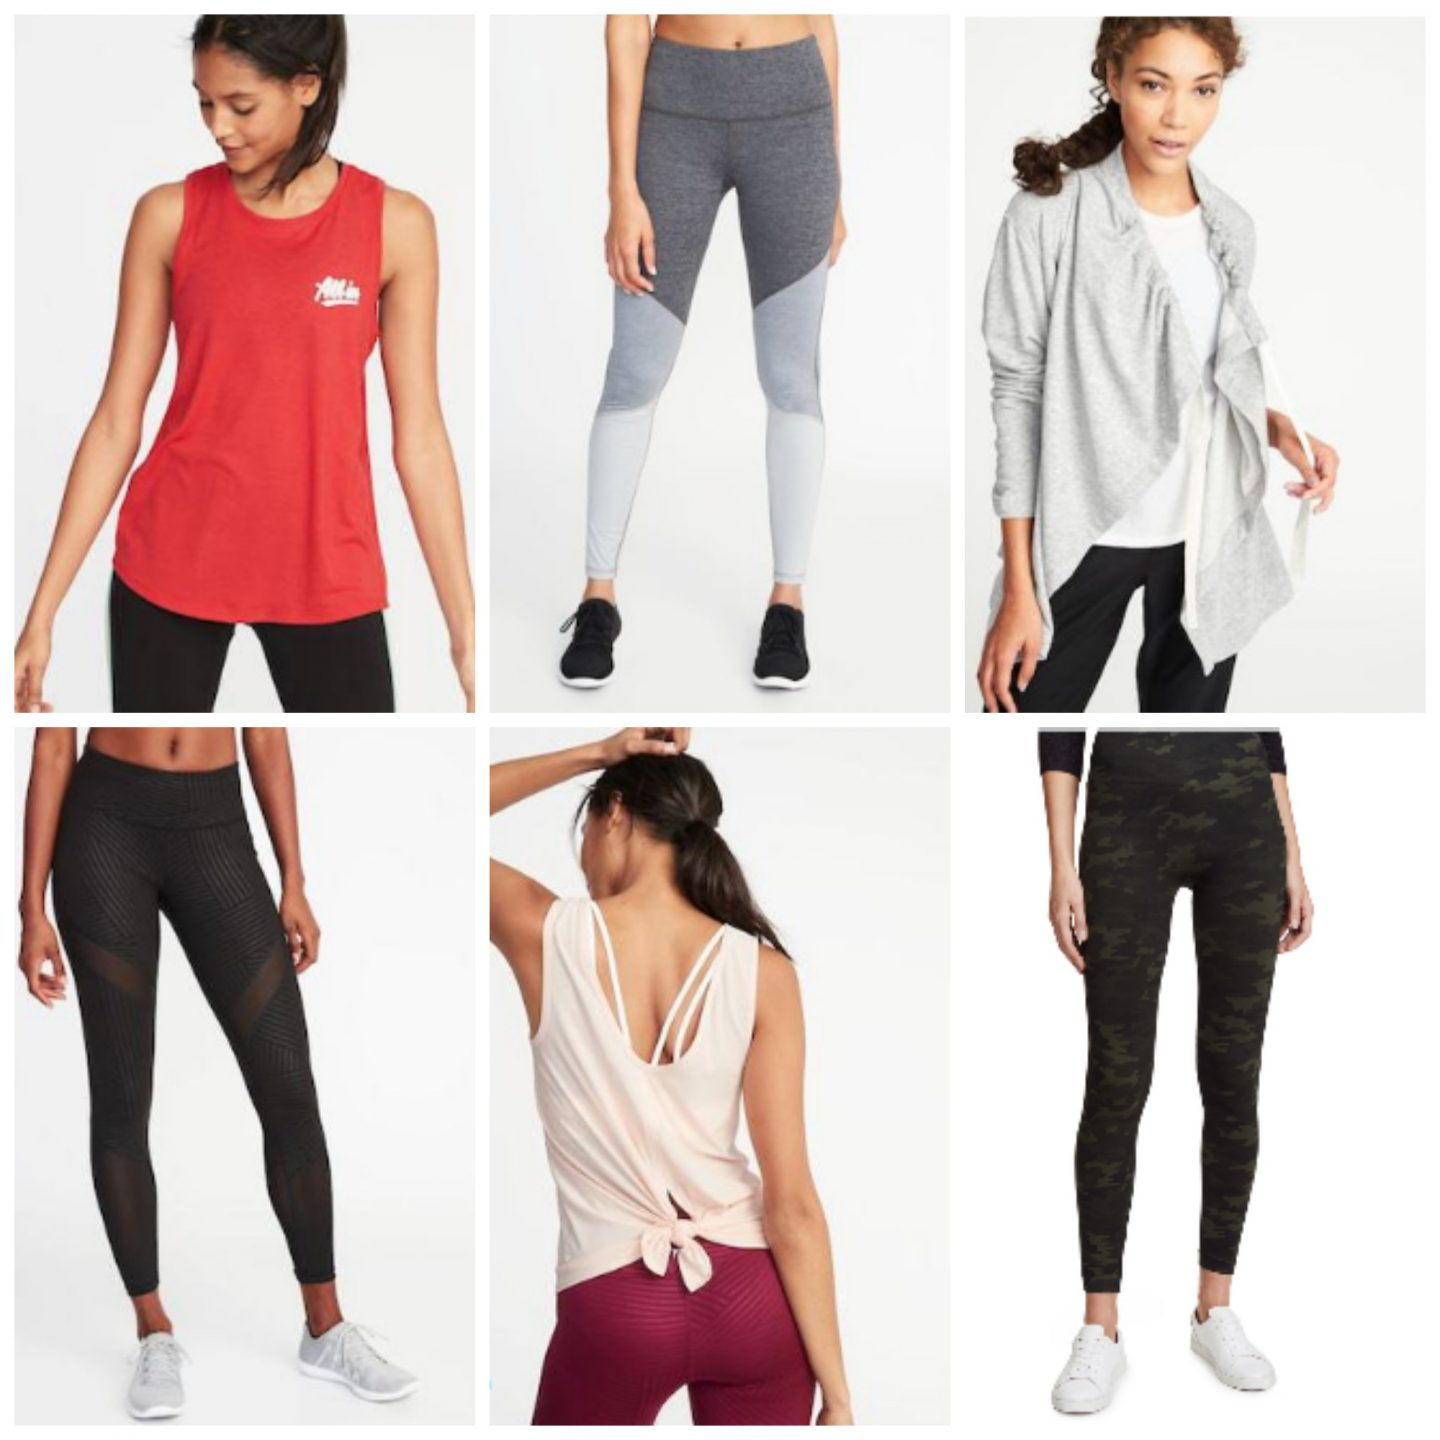 Tuesday's Cravings: Activewear